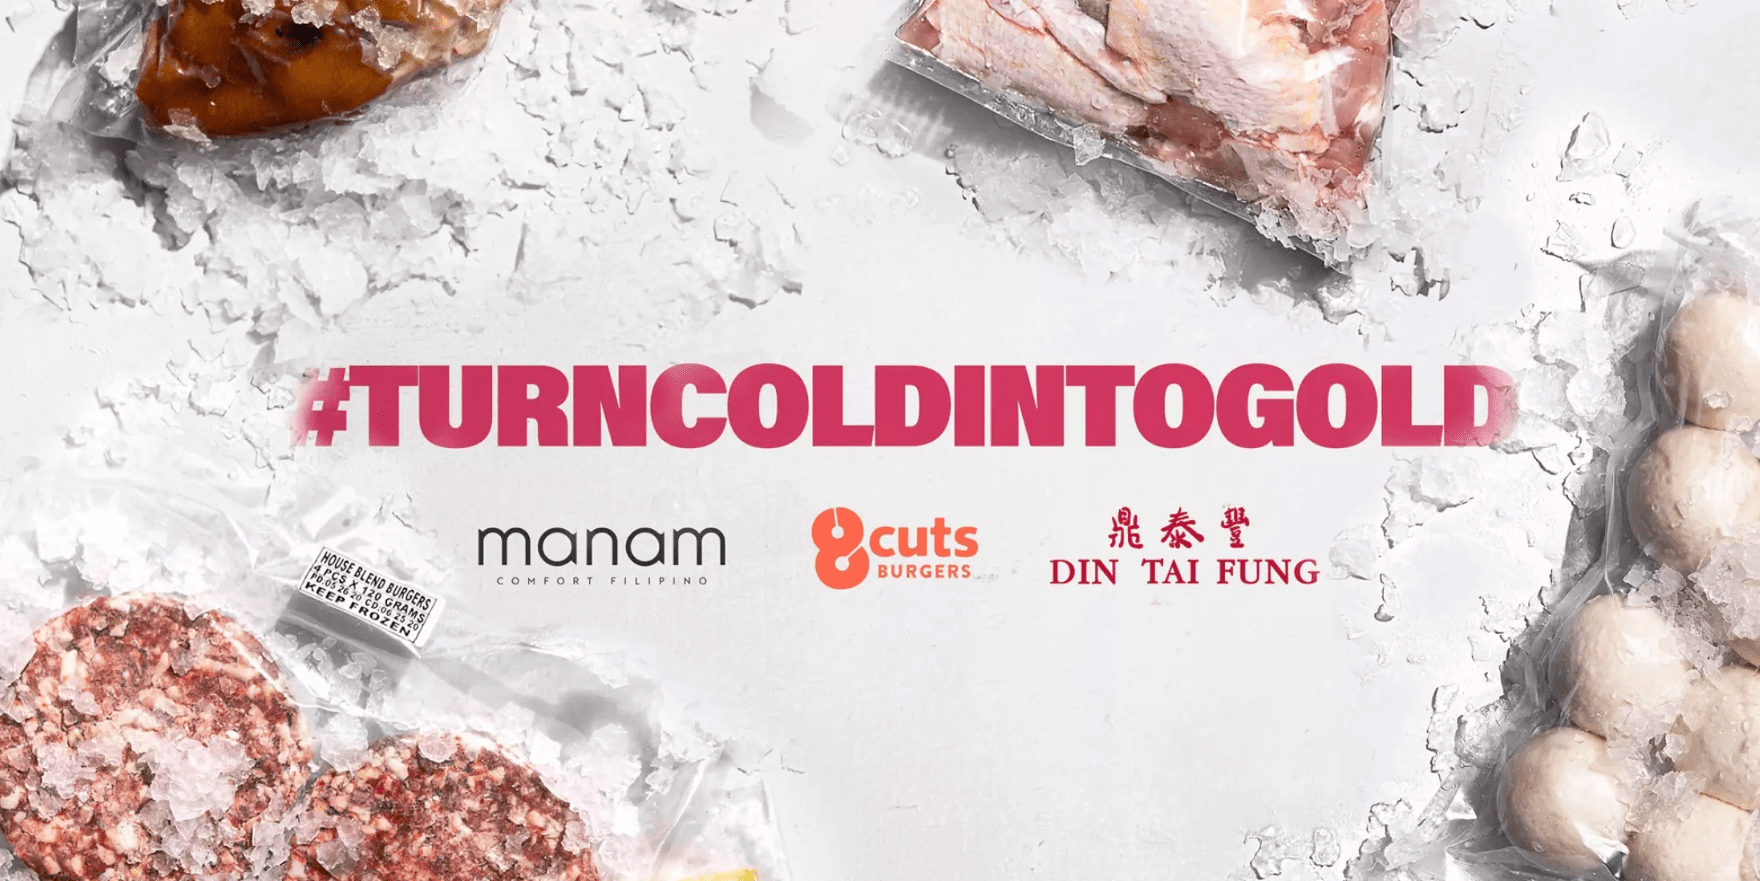 Moment the Grocer: Frozen Manam Sisig, 8Cuts Burgers Now at Shopee and Lazada!